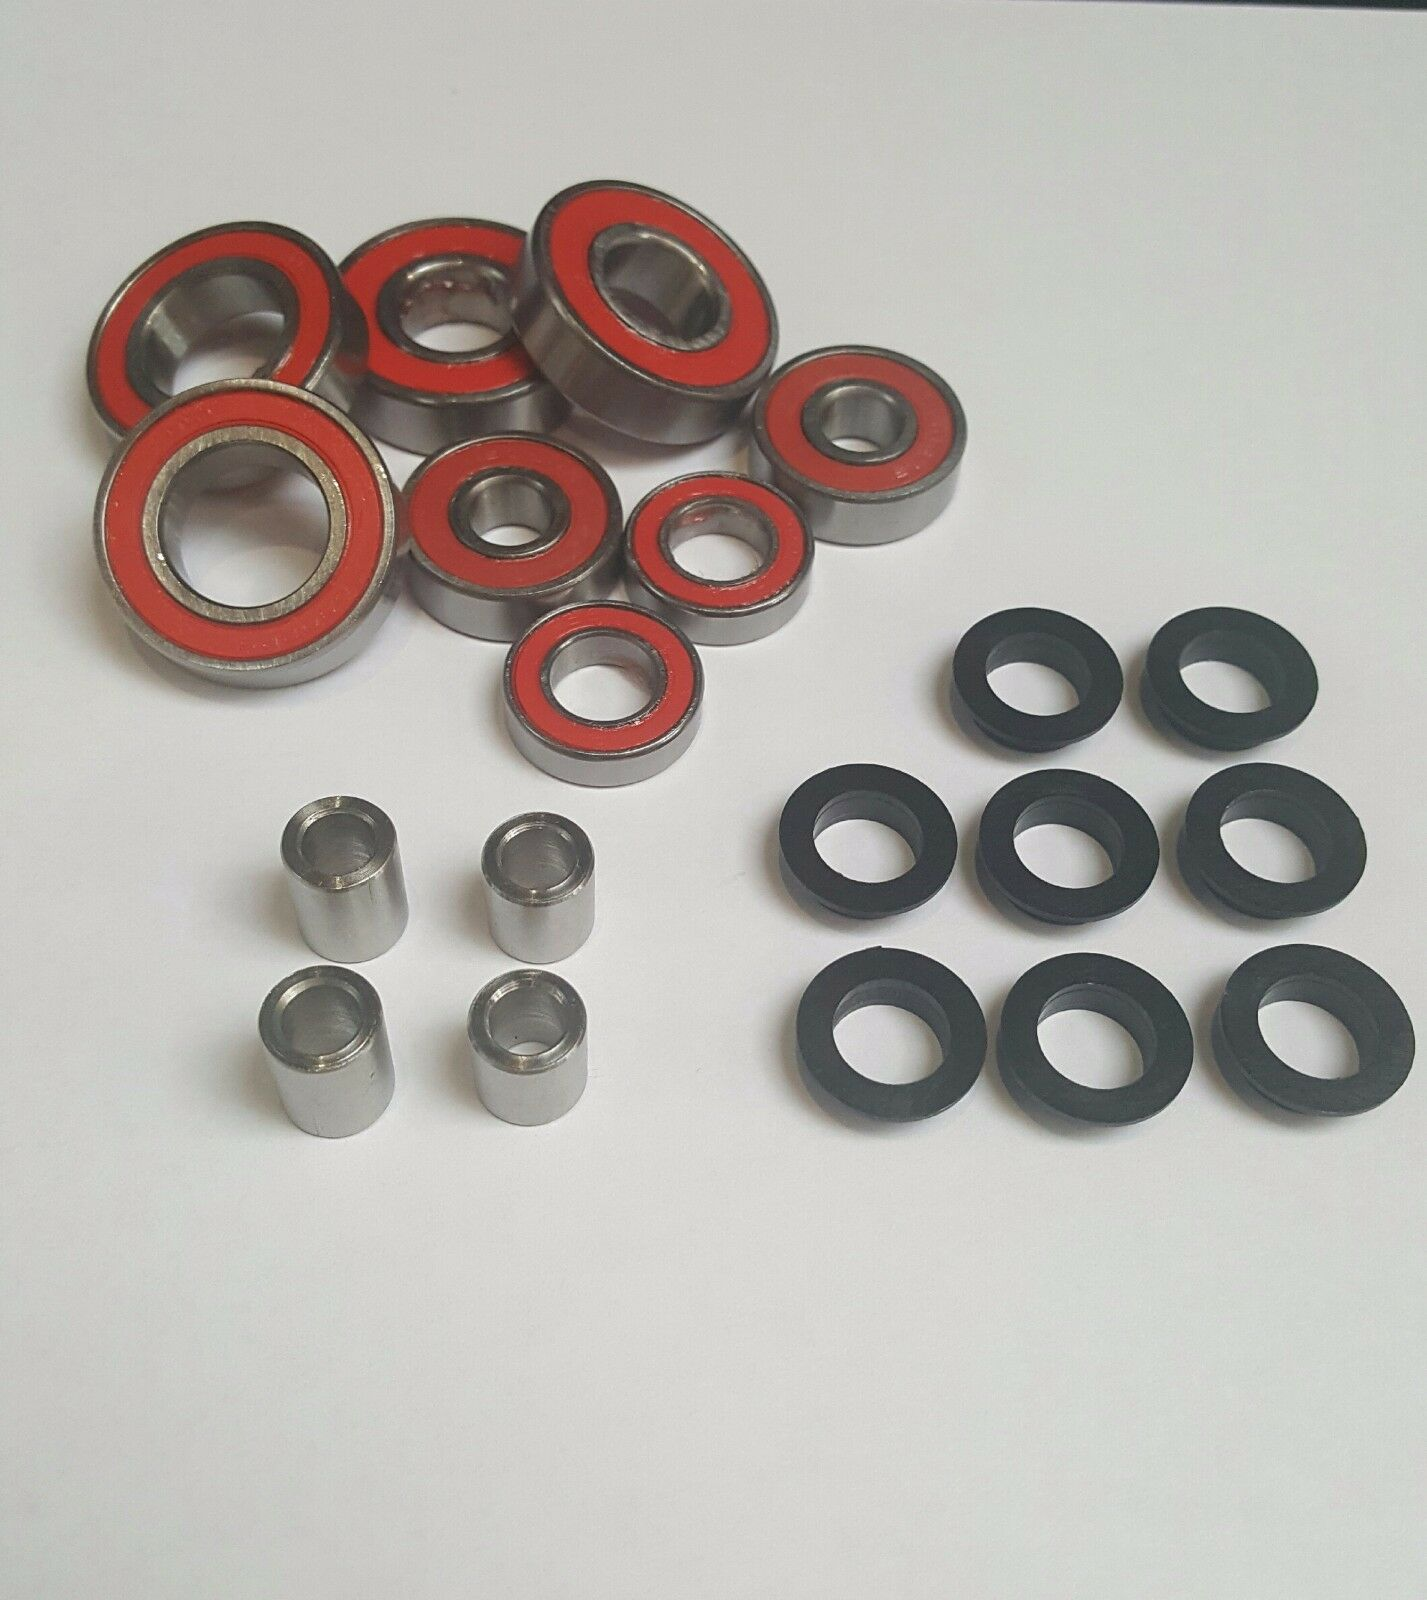 Kona Kikapu Deluxe 2003-2007 Bearing & Bush Kit